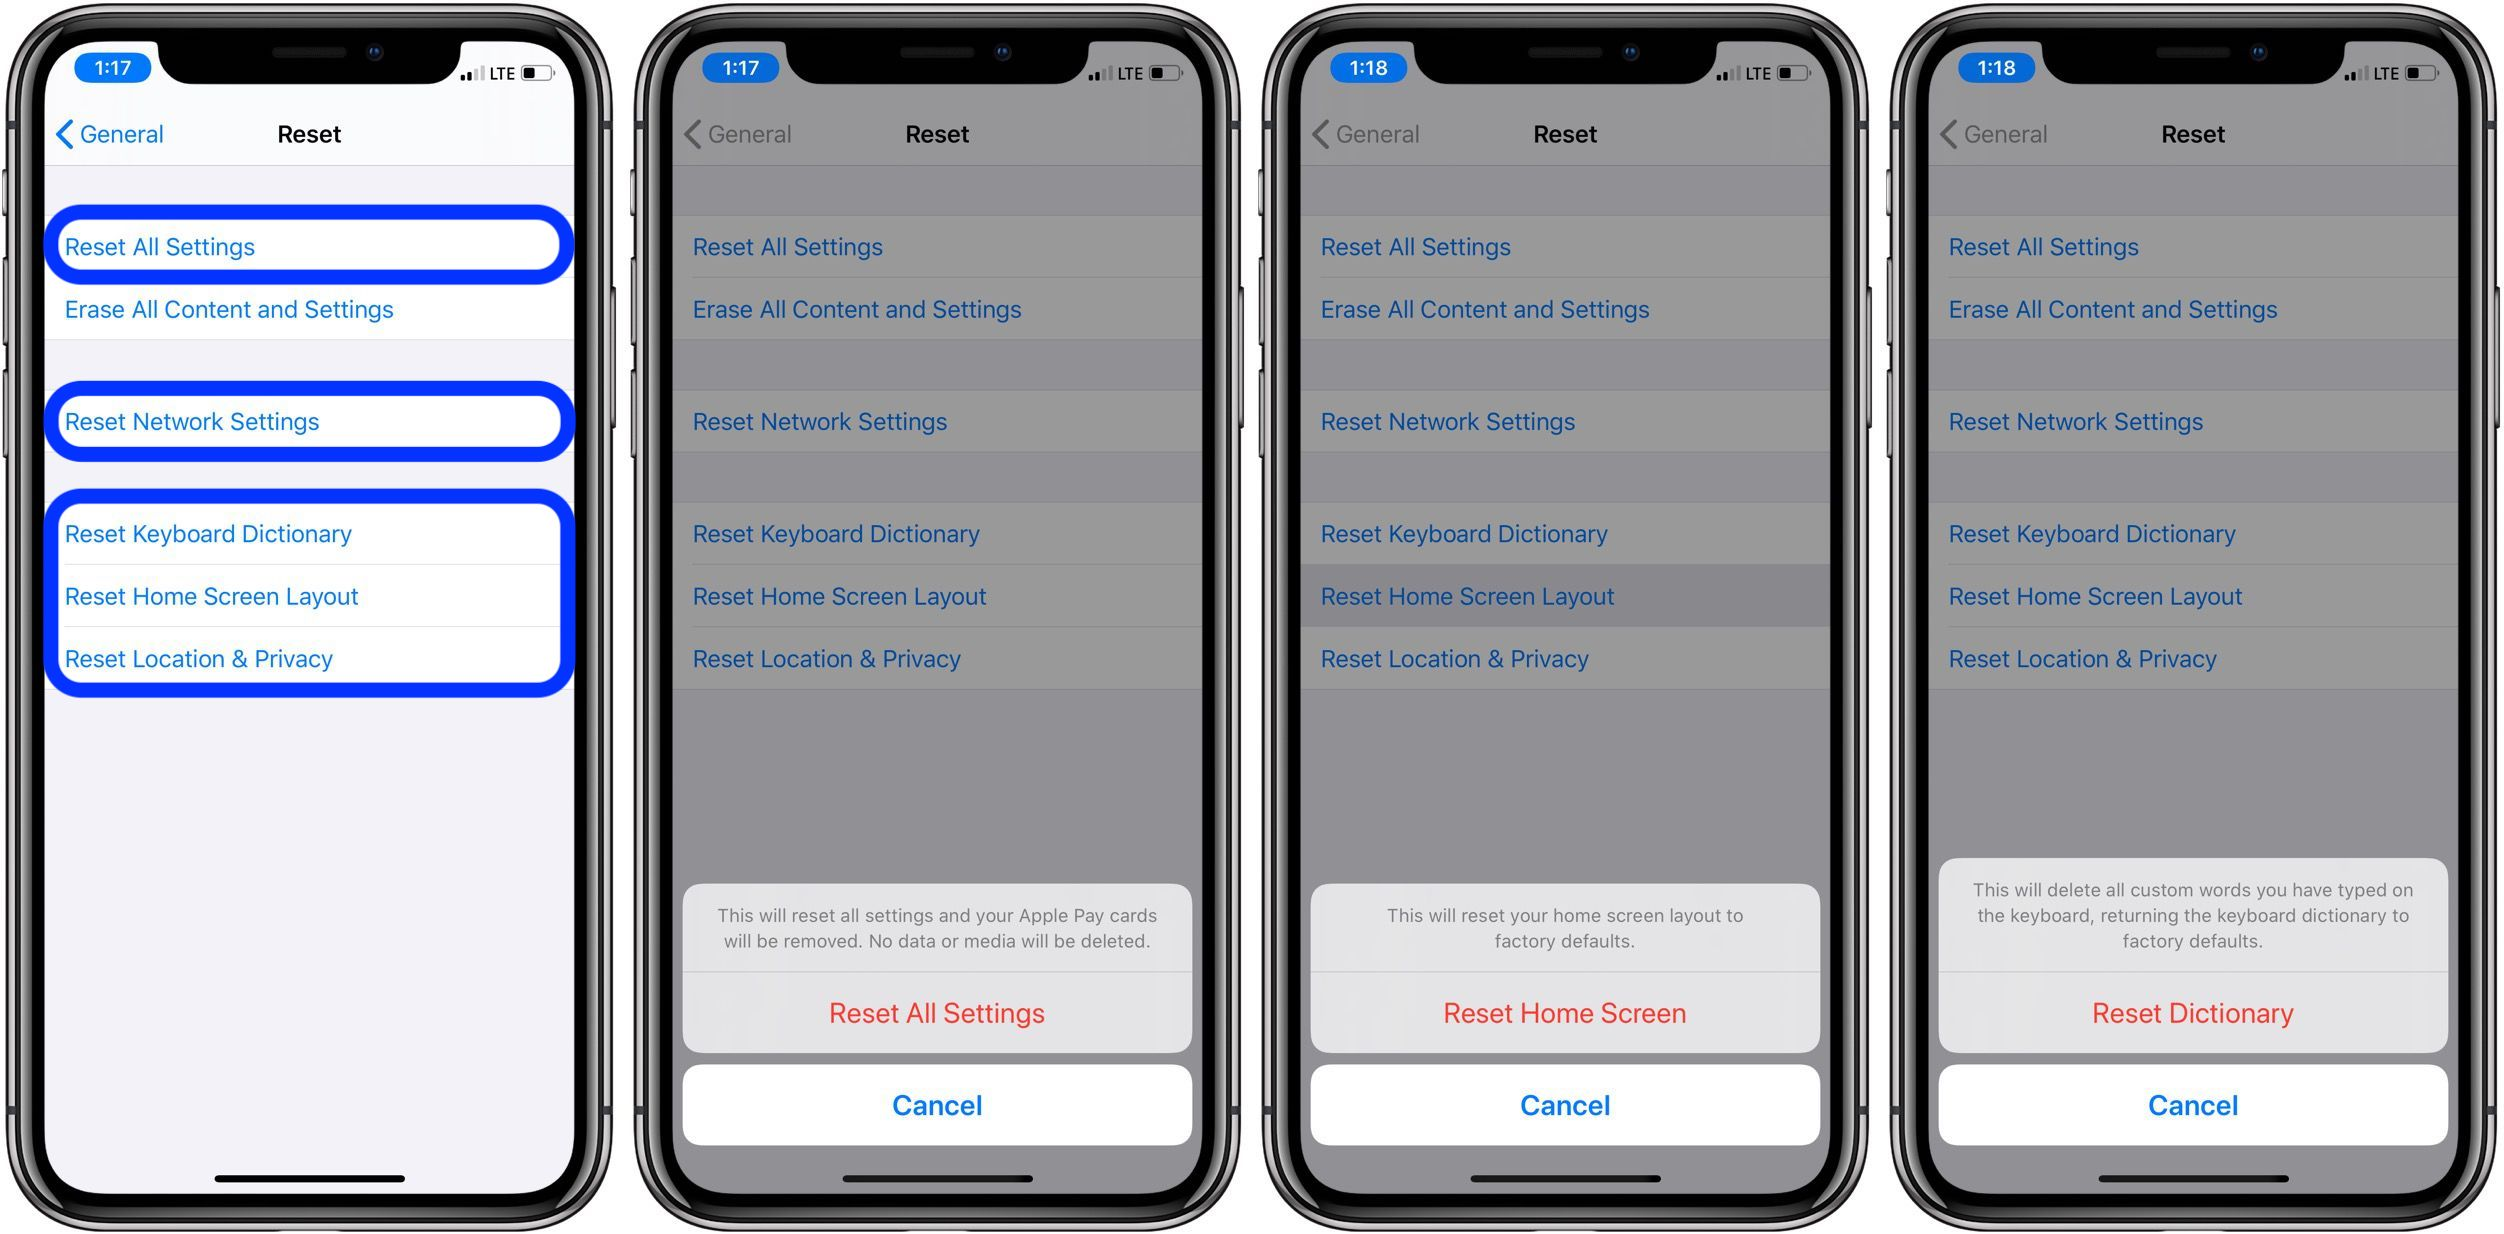 restore iPhone default settings walkthrough 2